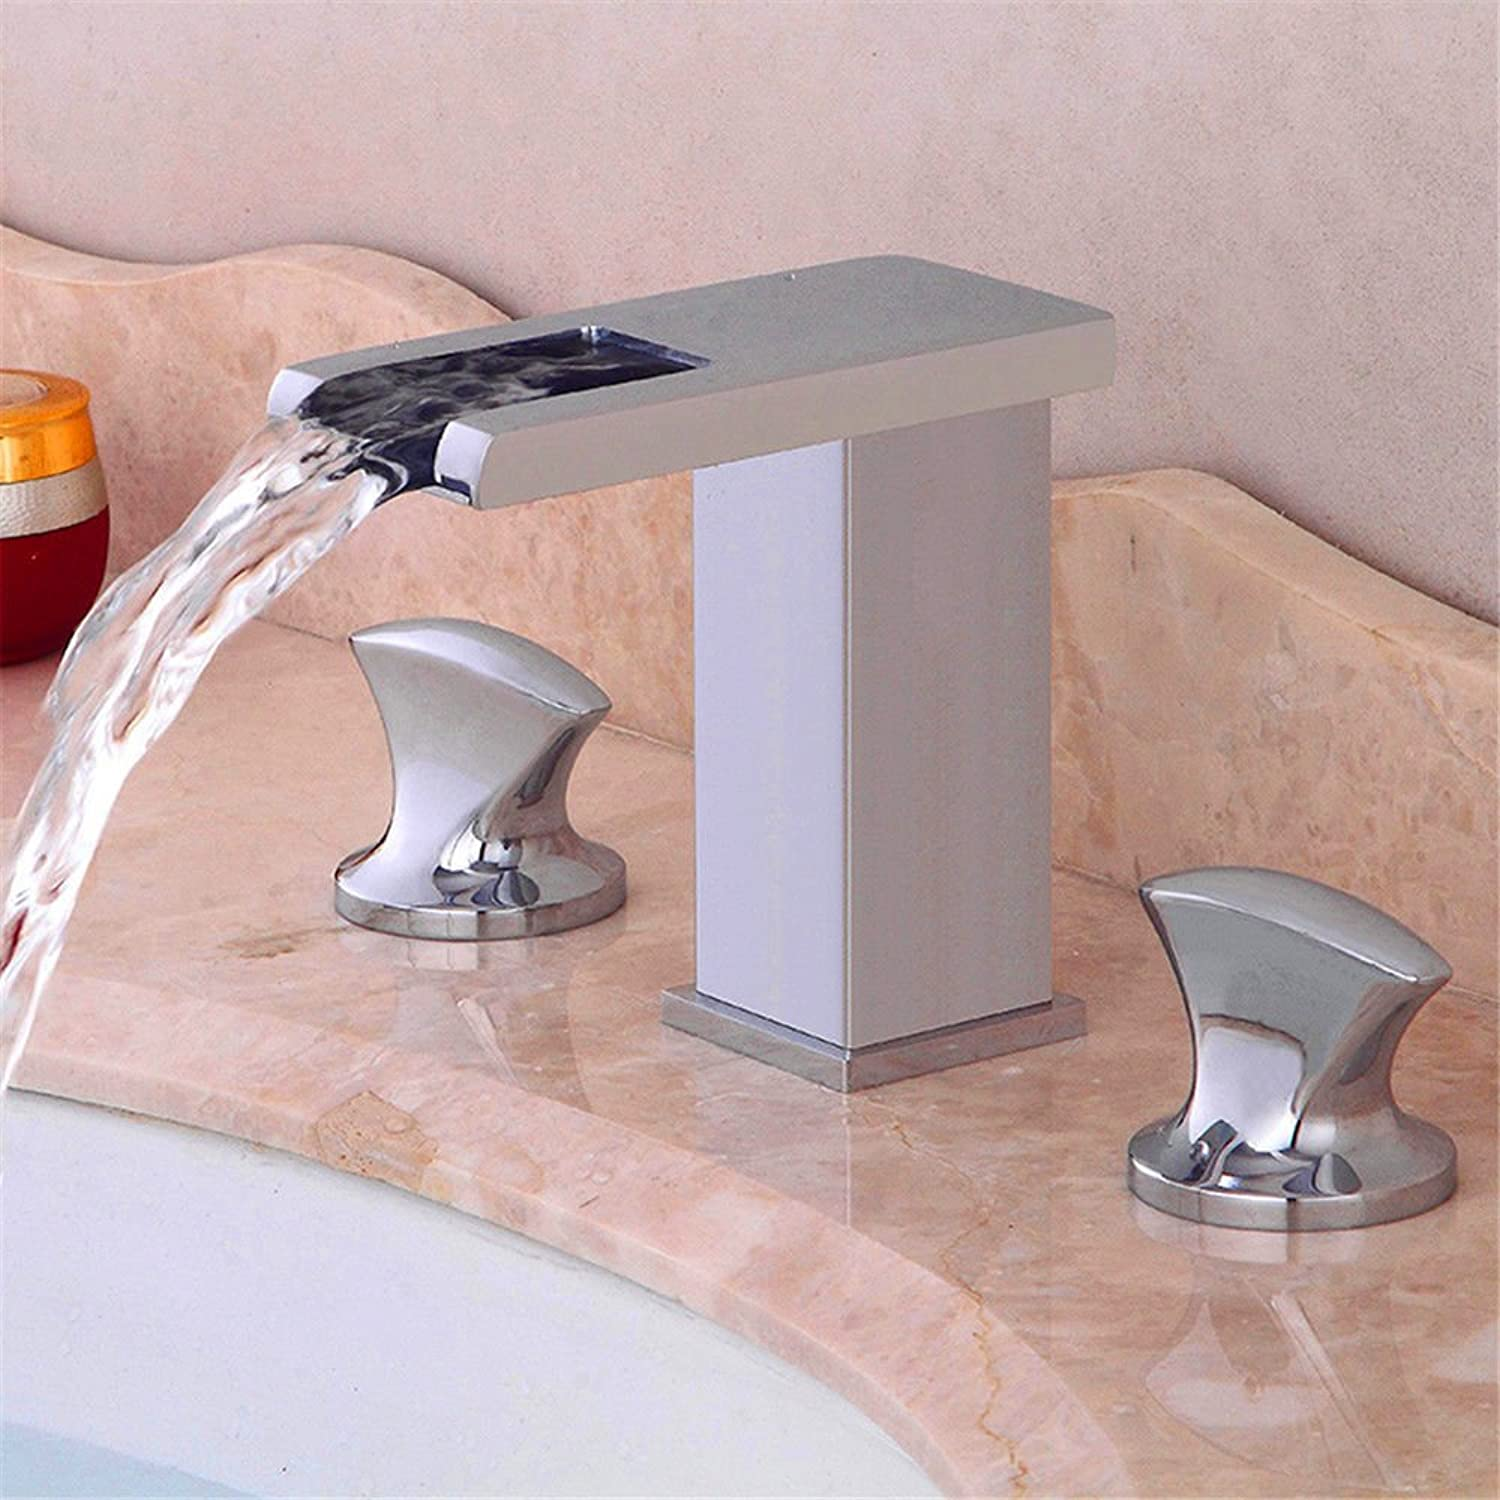 AQMMi Basin Sink Mixer Tap for Lavatory Hot and Cold Water 3-Piece Set Hot and Cold Water Waterfall Wide Mouth Bathroom Vanity Sink Faucet